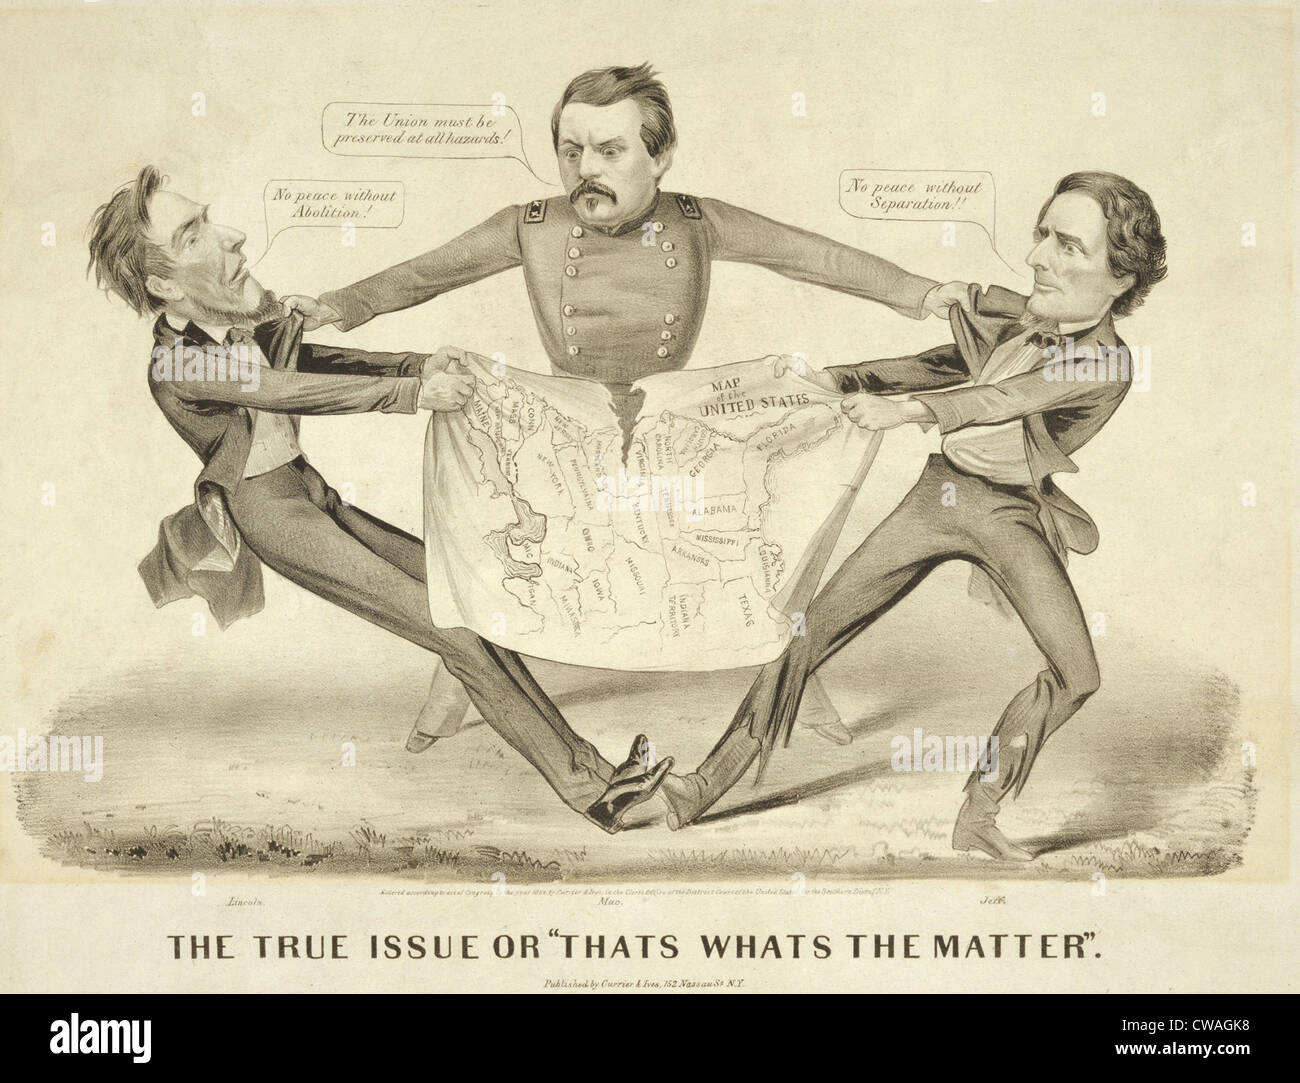 Cartoon about the 1864 US presidential election, favoring the Peace campaign of Democrat George McClellan, in the - Stock Image